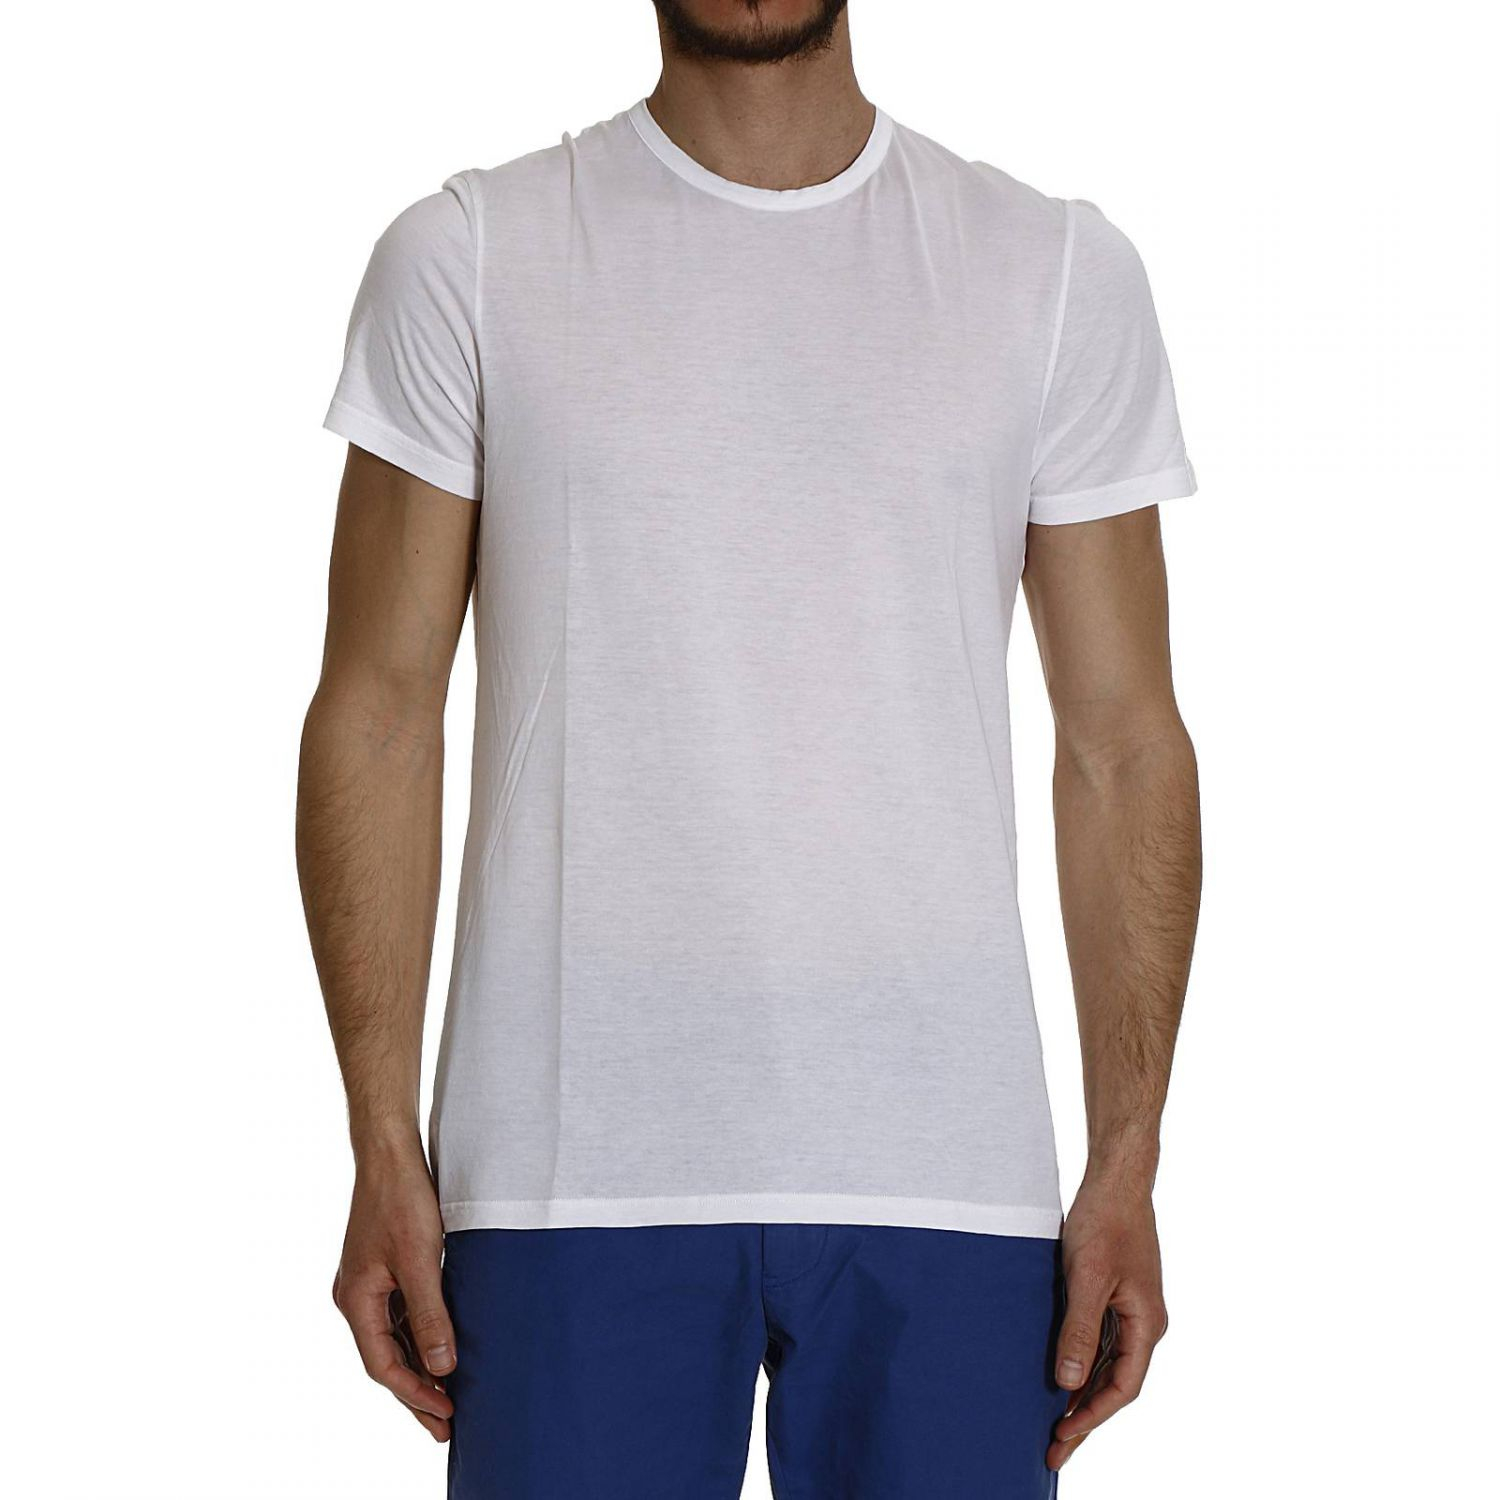 Brooksfield t shirt half sleeve crew neck cotton in white for Half sleeve t shirts for men